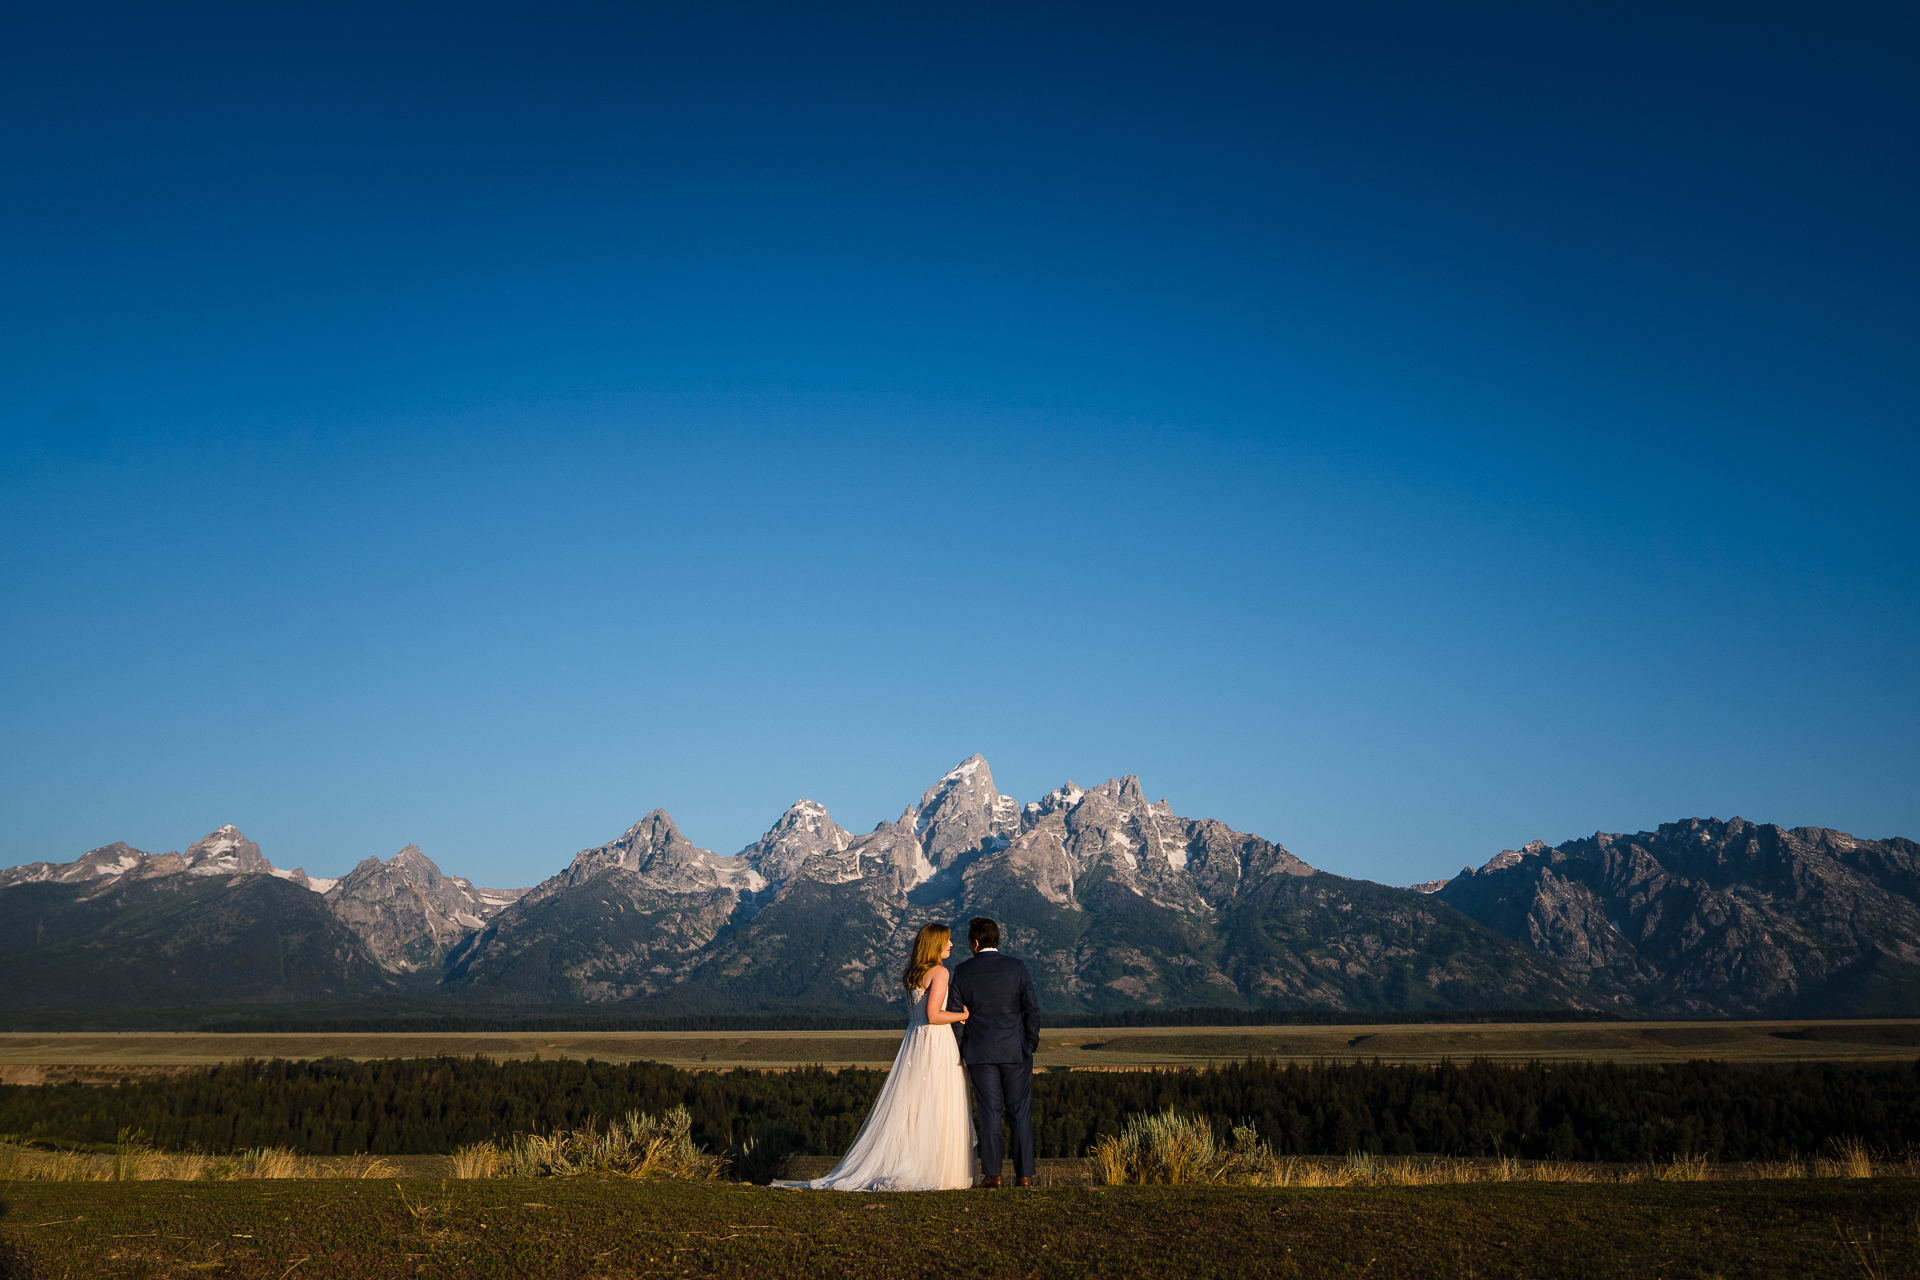 Grand Teton National Park Elopement Photographer | Bride and groom stopping for quick a portrait at an overlook